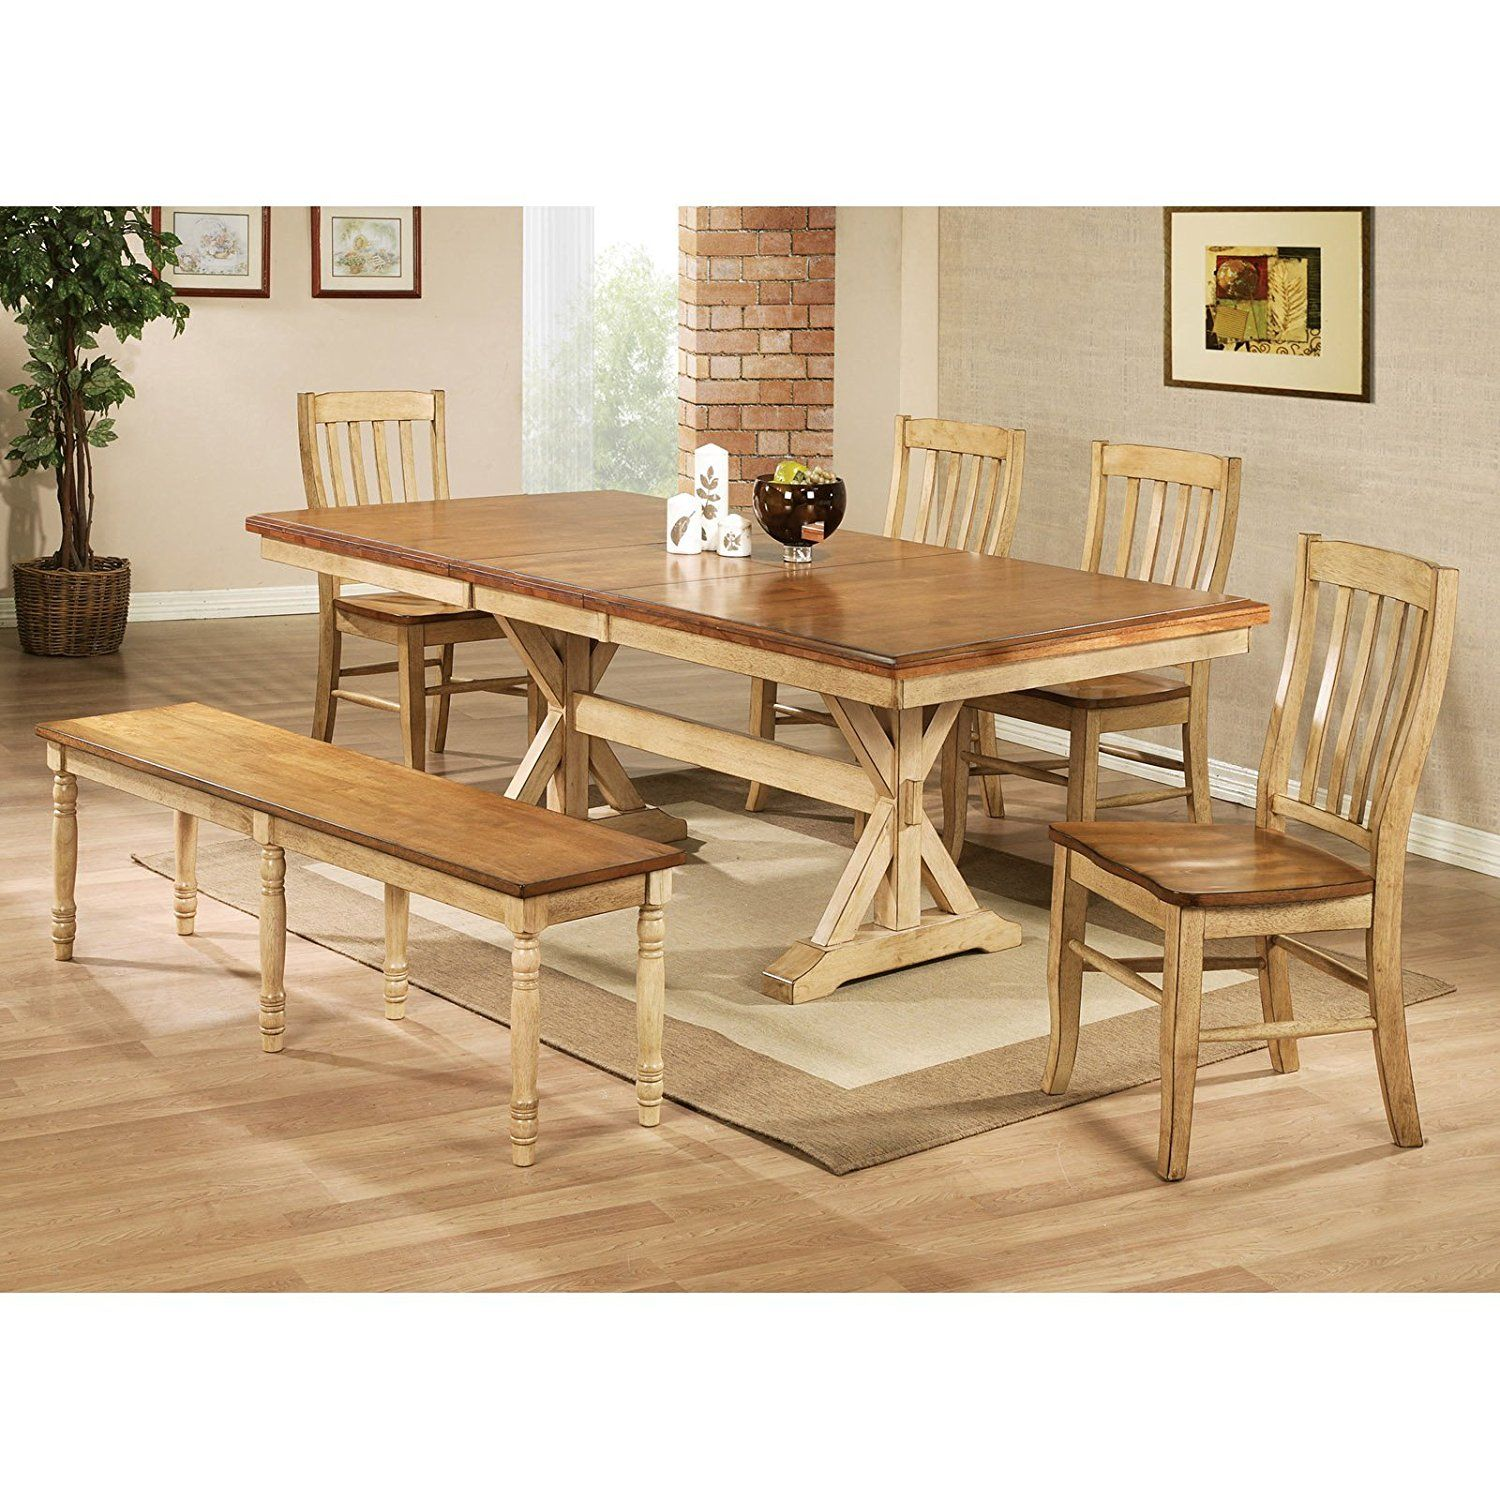 Winners ly Quails Run 84 in Trestle Dining Table with 18 in